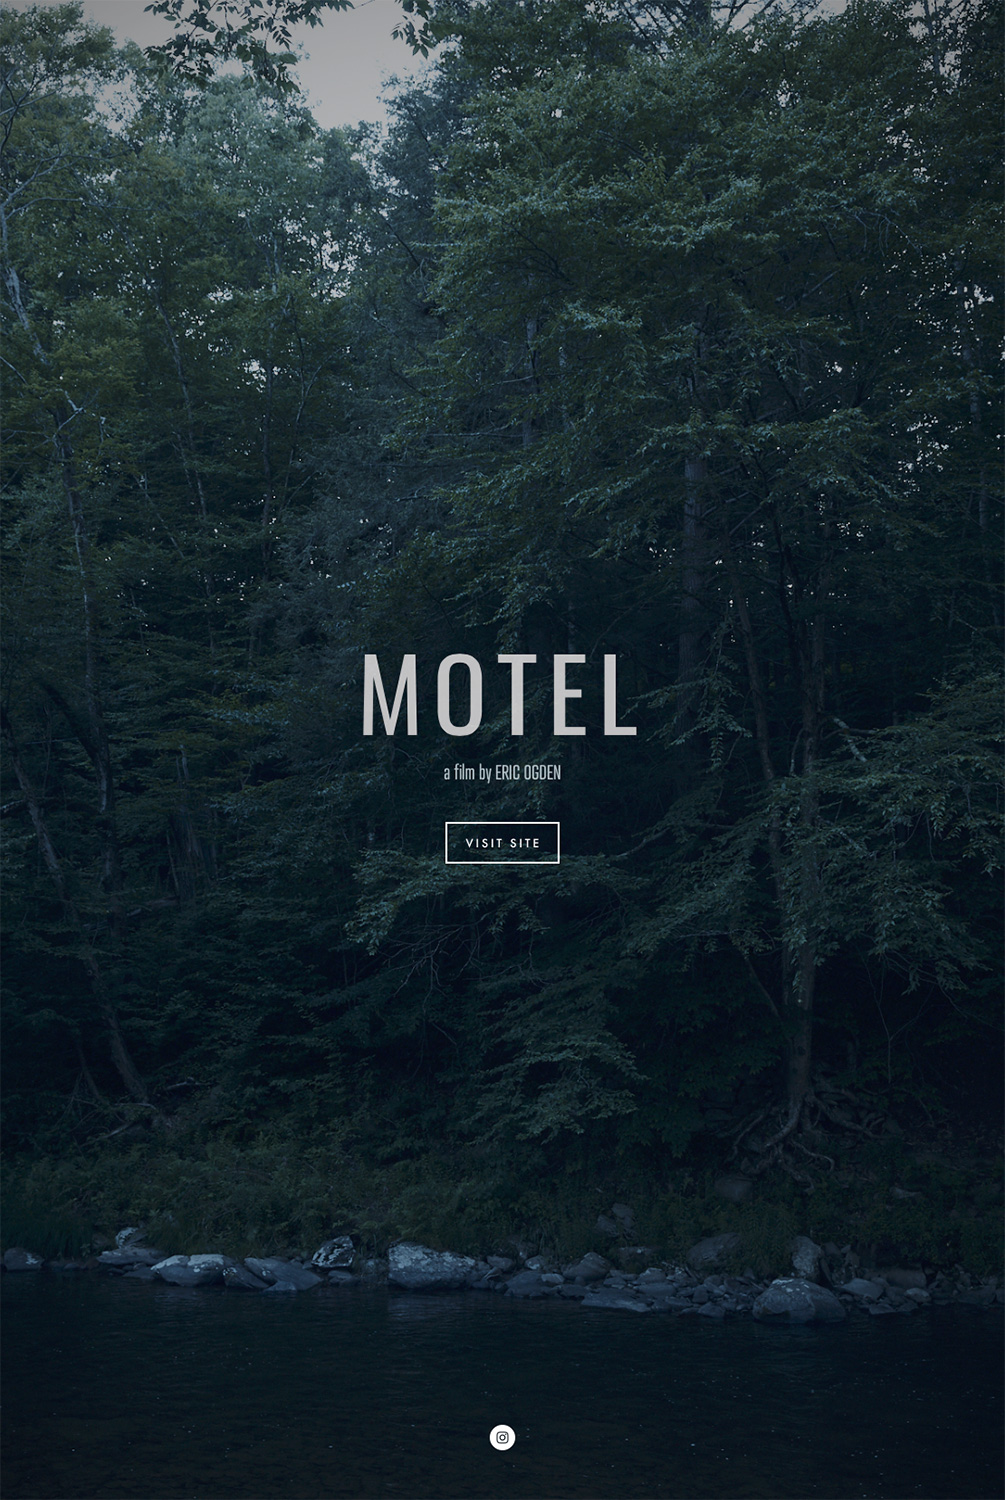 MOTEL_mobilesite_screenshot_Web.jpg